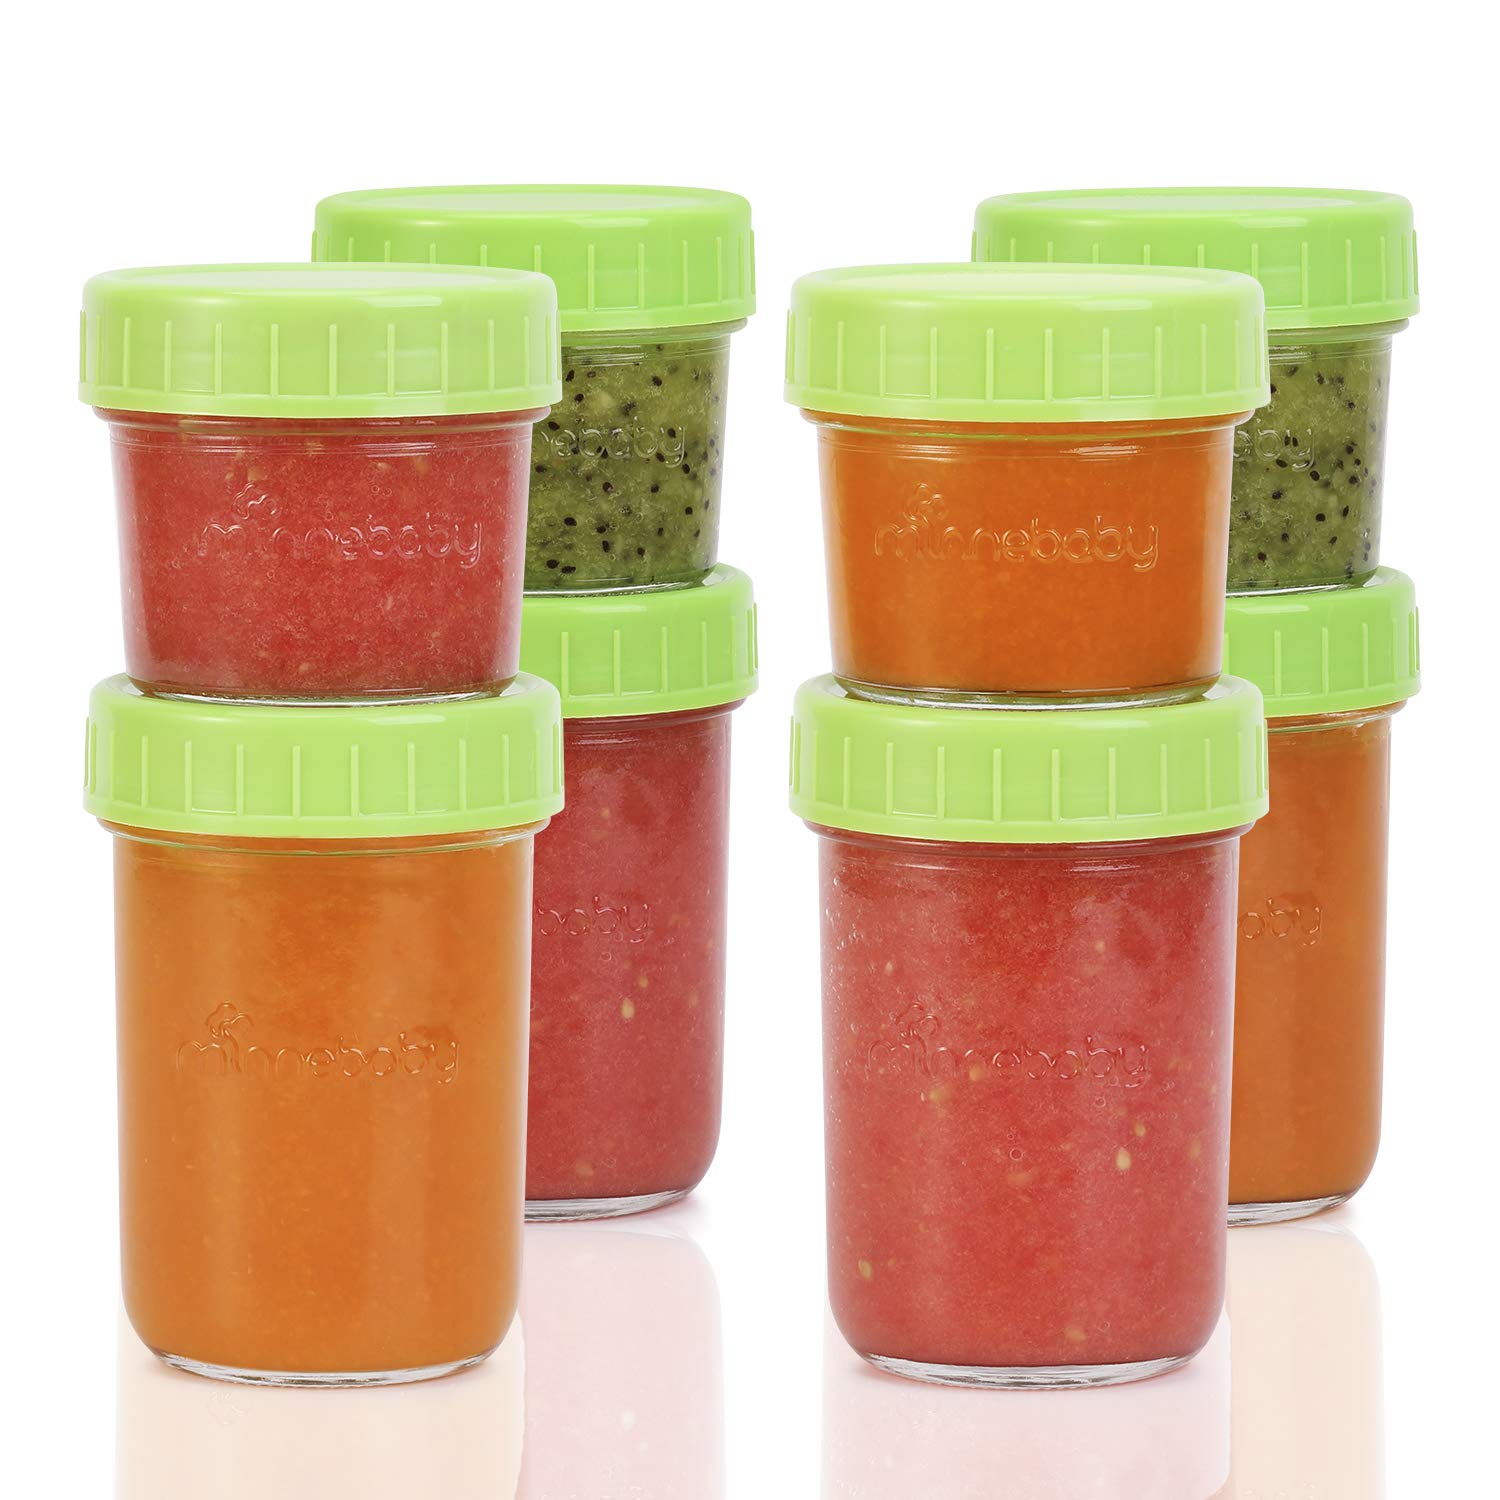 Glass Baby Food Storage Containers - Set Contains 4 Small Reusable 4oz Jars and 4 Large Reusable 8oz Jars with Airtight Lids and Waterproof Label